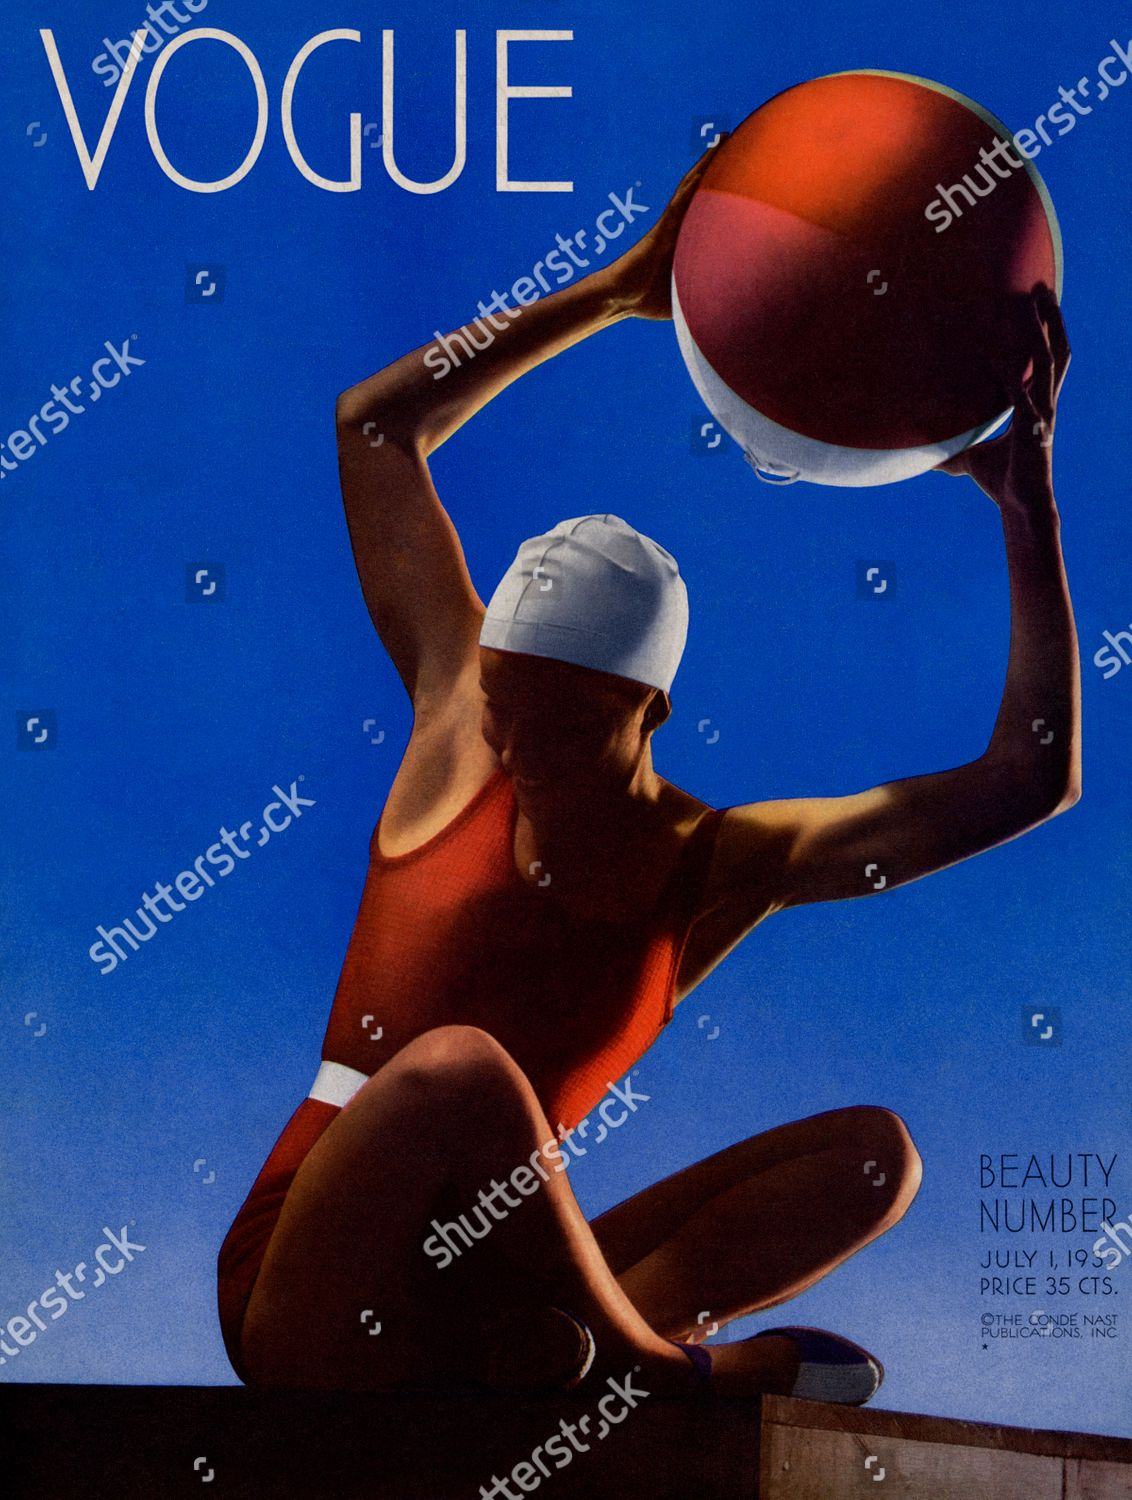 Stock photo of Vogue July 01, 1932 Cover